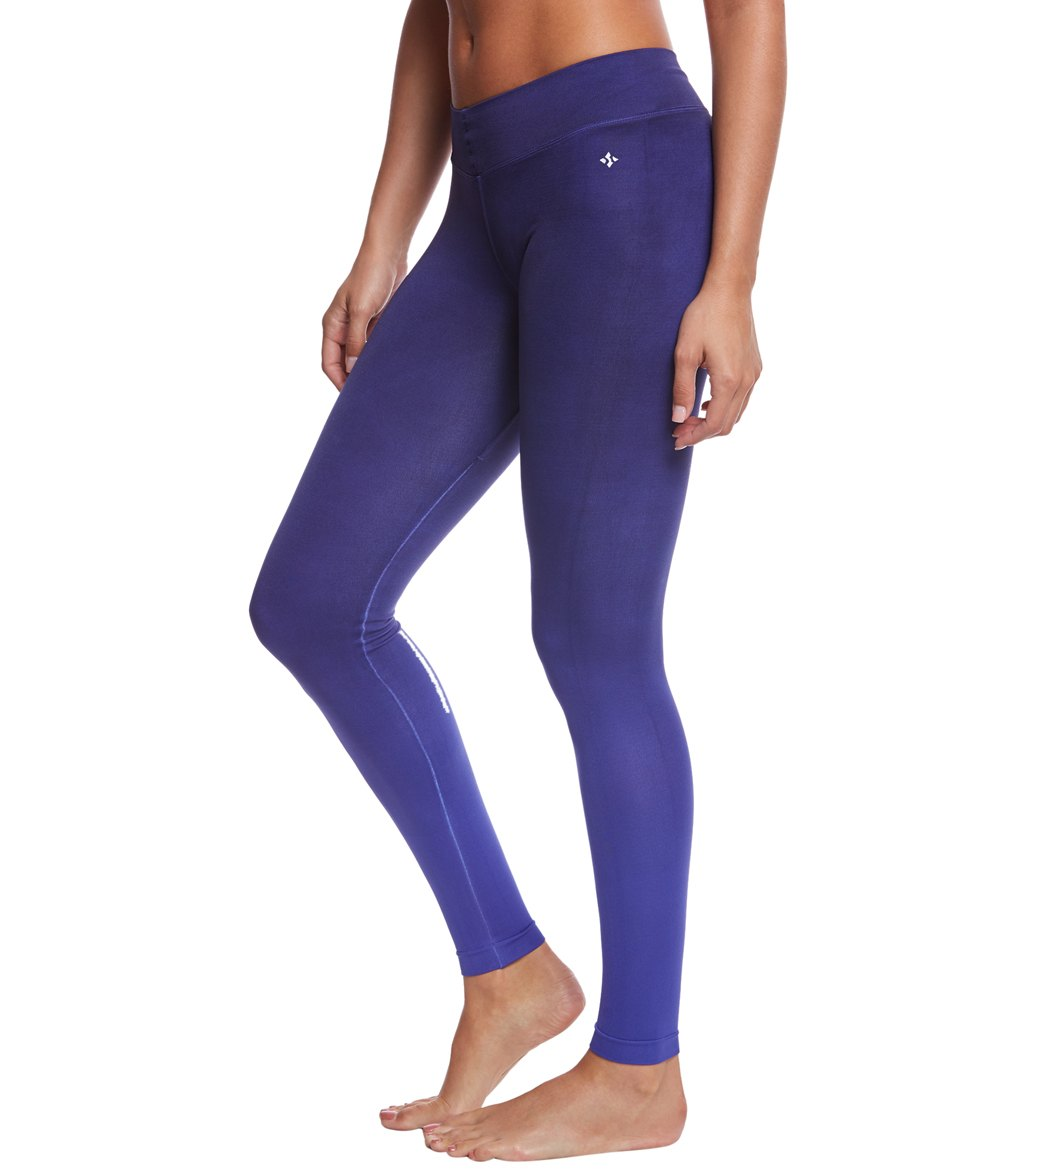 NUX Ombre V-Ankle Seamless Yoga Leggings At SwimOutlet.com